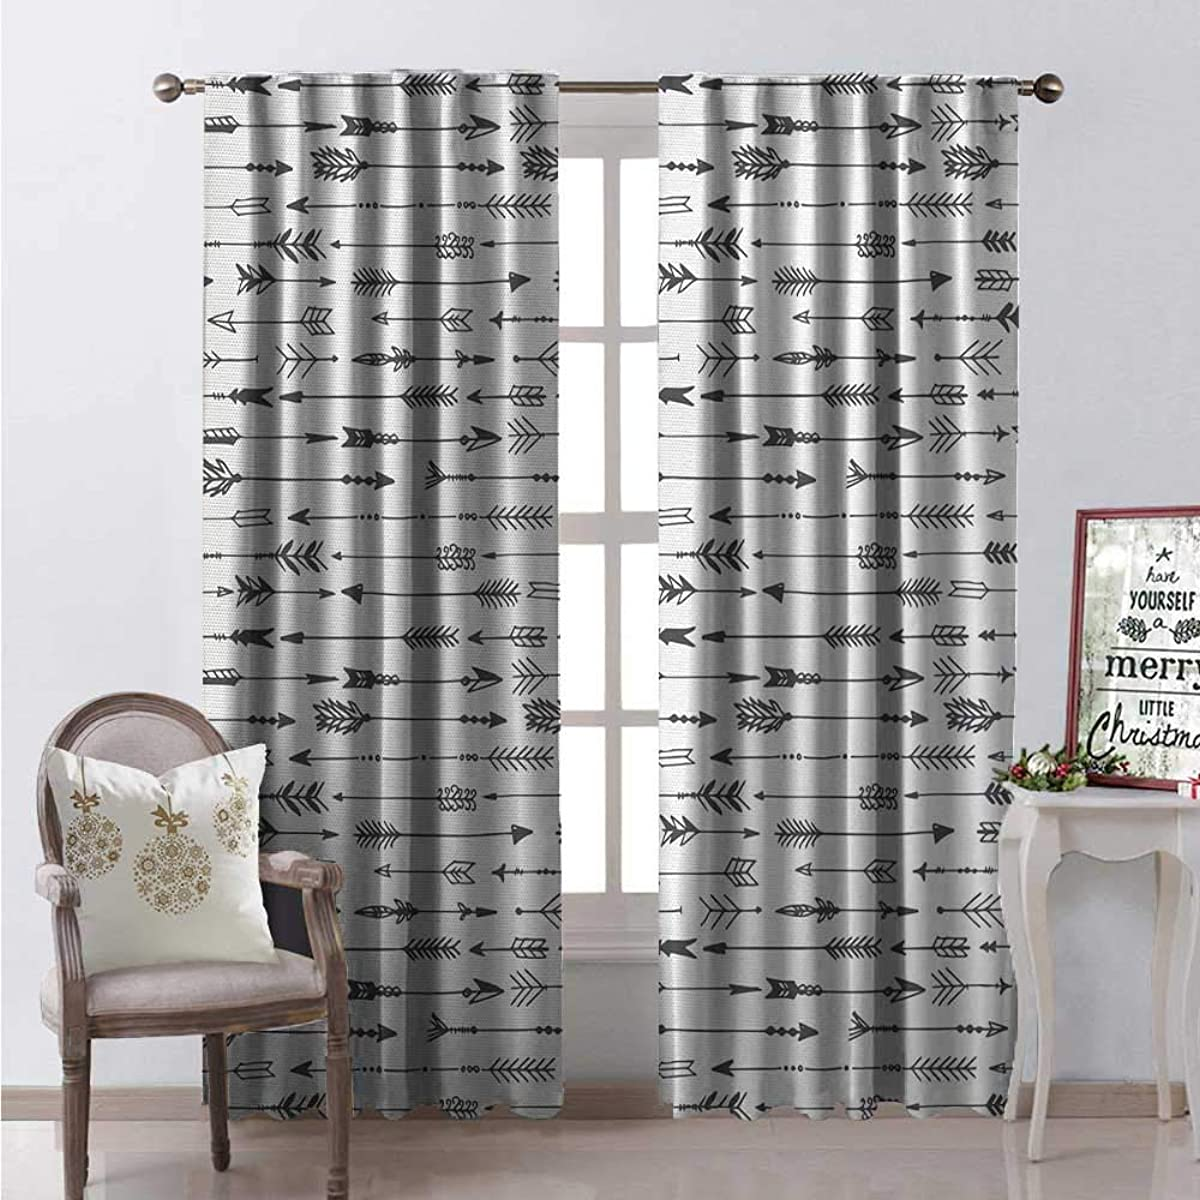 Hengshu Arrows Thermal Insulating Blackout Curtain Arrows Rustic Design Pattern in Vintage Artwork Drawing Art Effect Print Blackout Draperies for Bedroom W72 x L84 Black and White